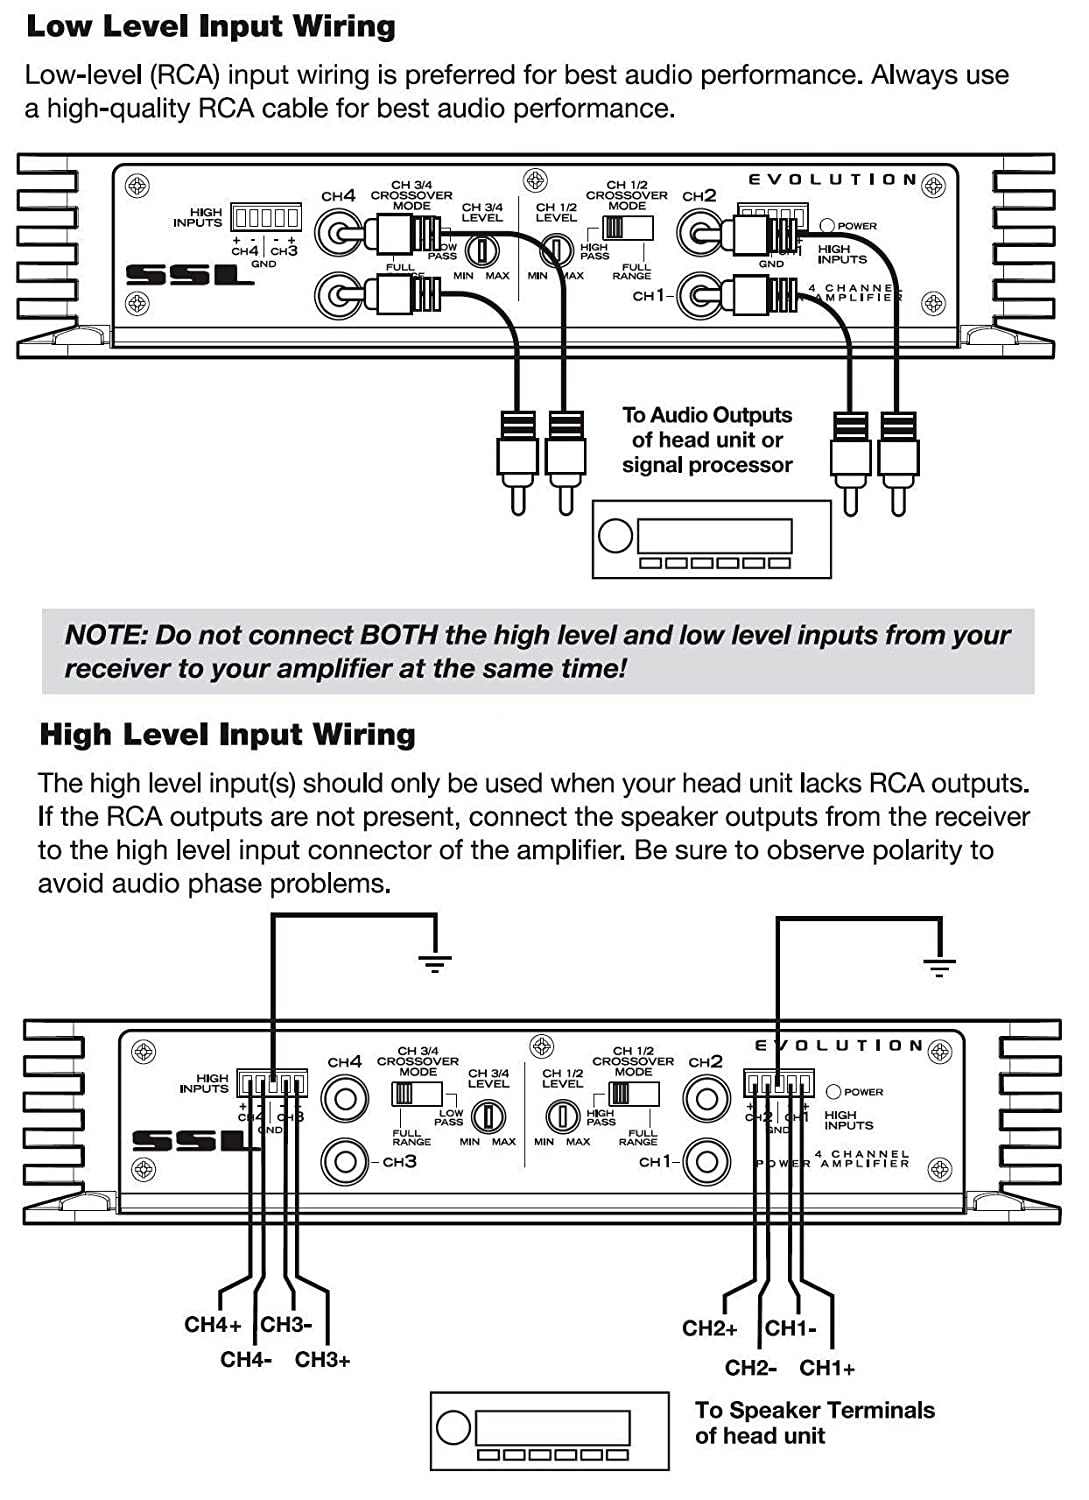 4 Channel Speaker Wiring Diagram Epic 400 Watts Full Range - Wiring on